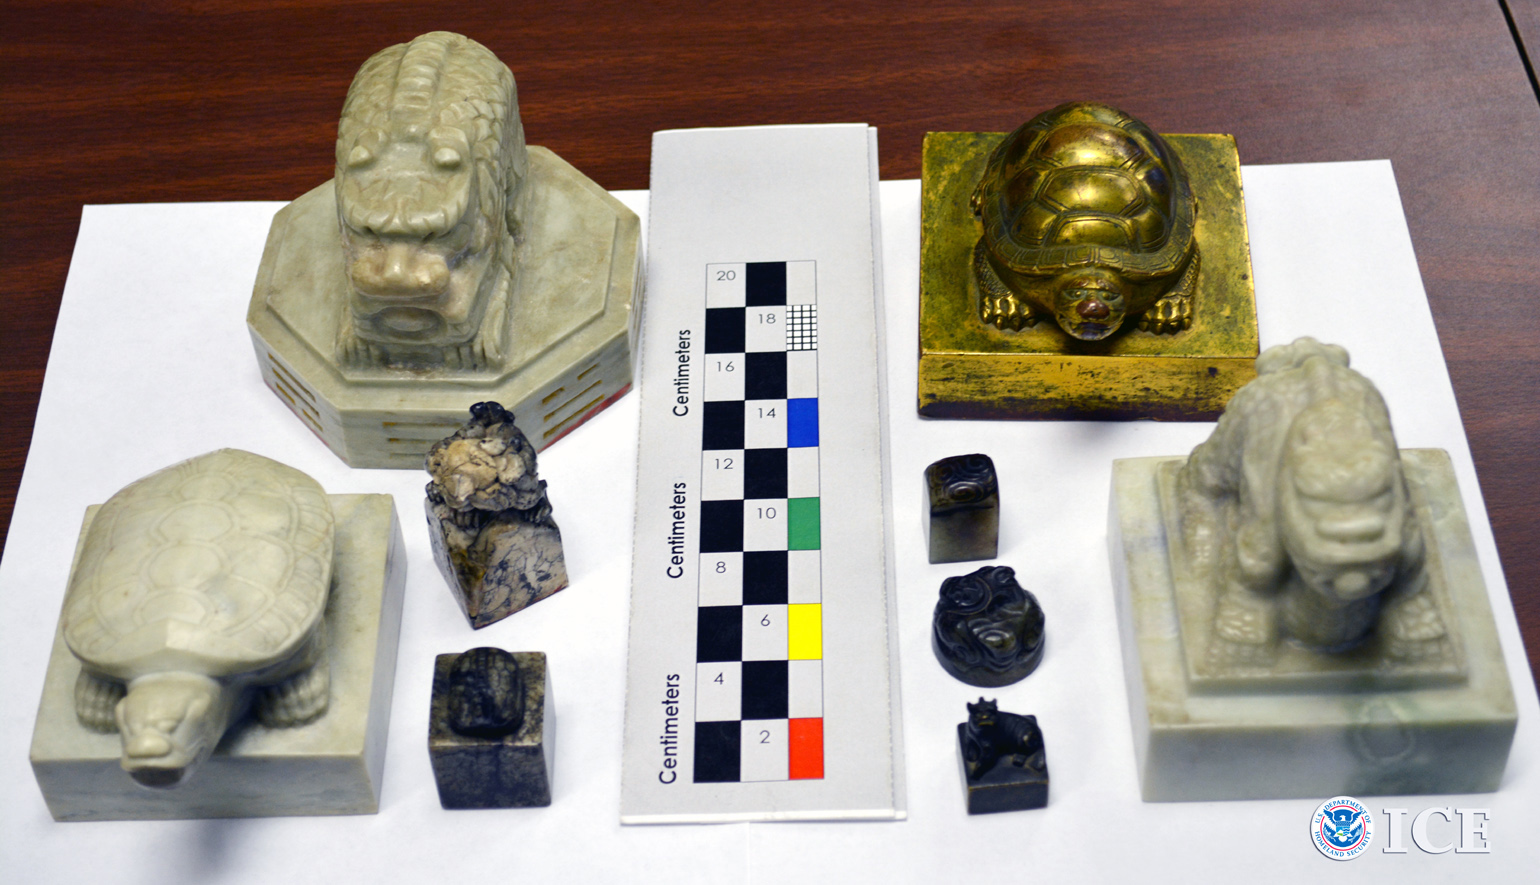 The nine seals include three national seals of the Korean Empire, one royal seal of the Korean Empire and five signets of the Joseon Royal Court of the Joseon Dynasty. The Korean Empire (1897-1910) succeeded the Joseon Dynasty (1392-1910). (ICE photo)